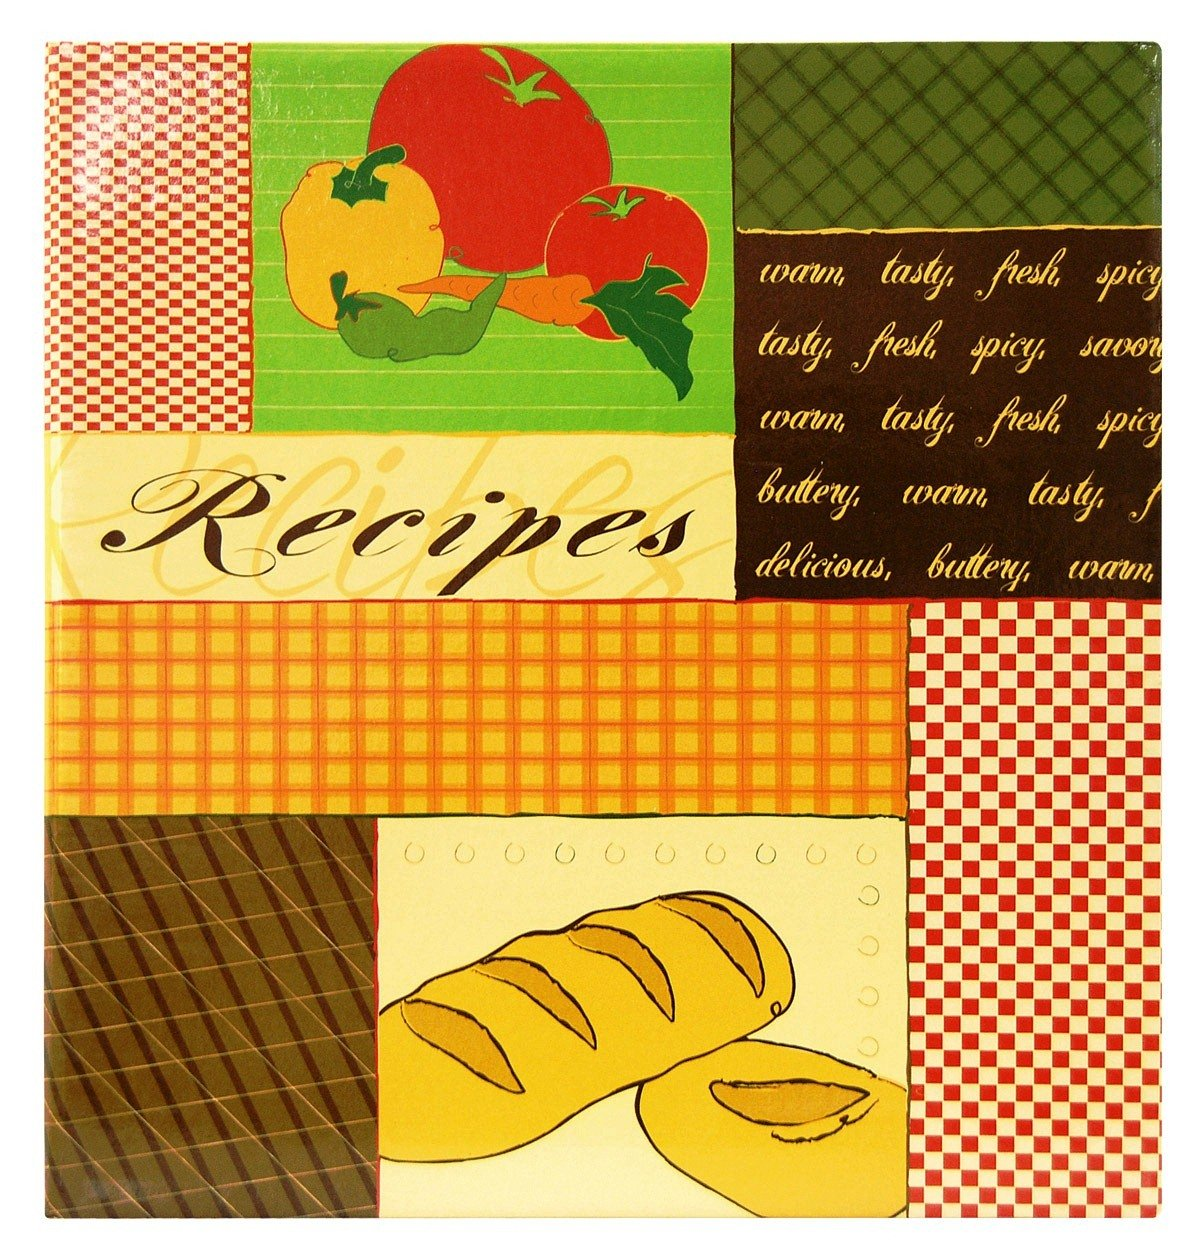 MBI 8.5x11 Inch 3-Ring Scrapbook Kit with 5x7 Inch Recipe Cards, Recipes (881851)